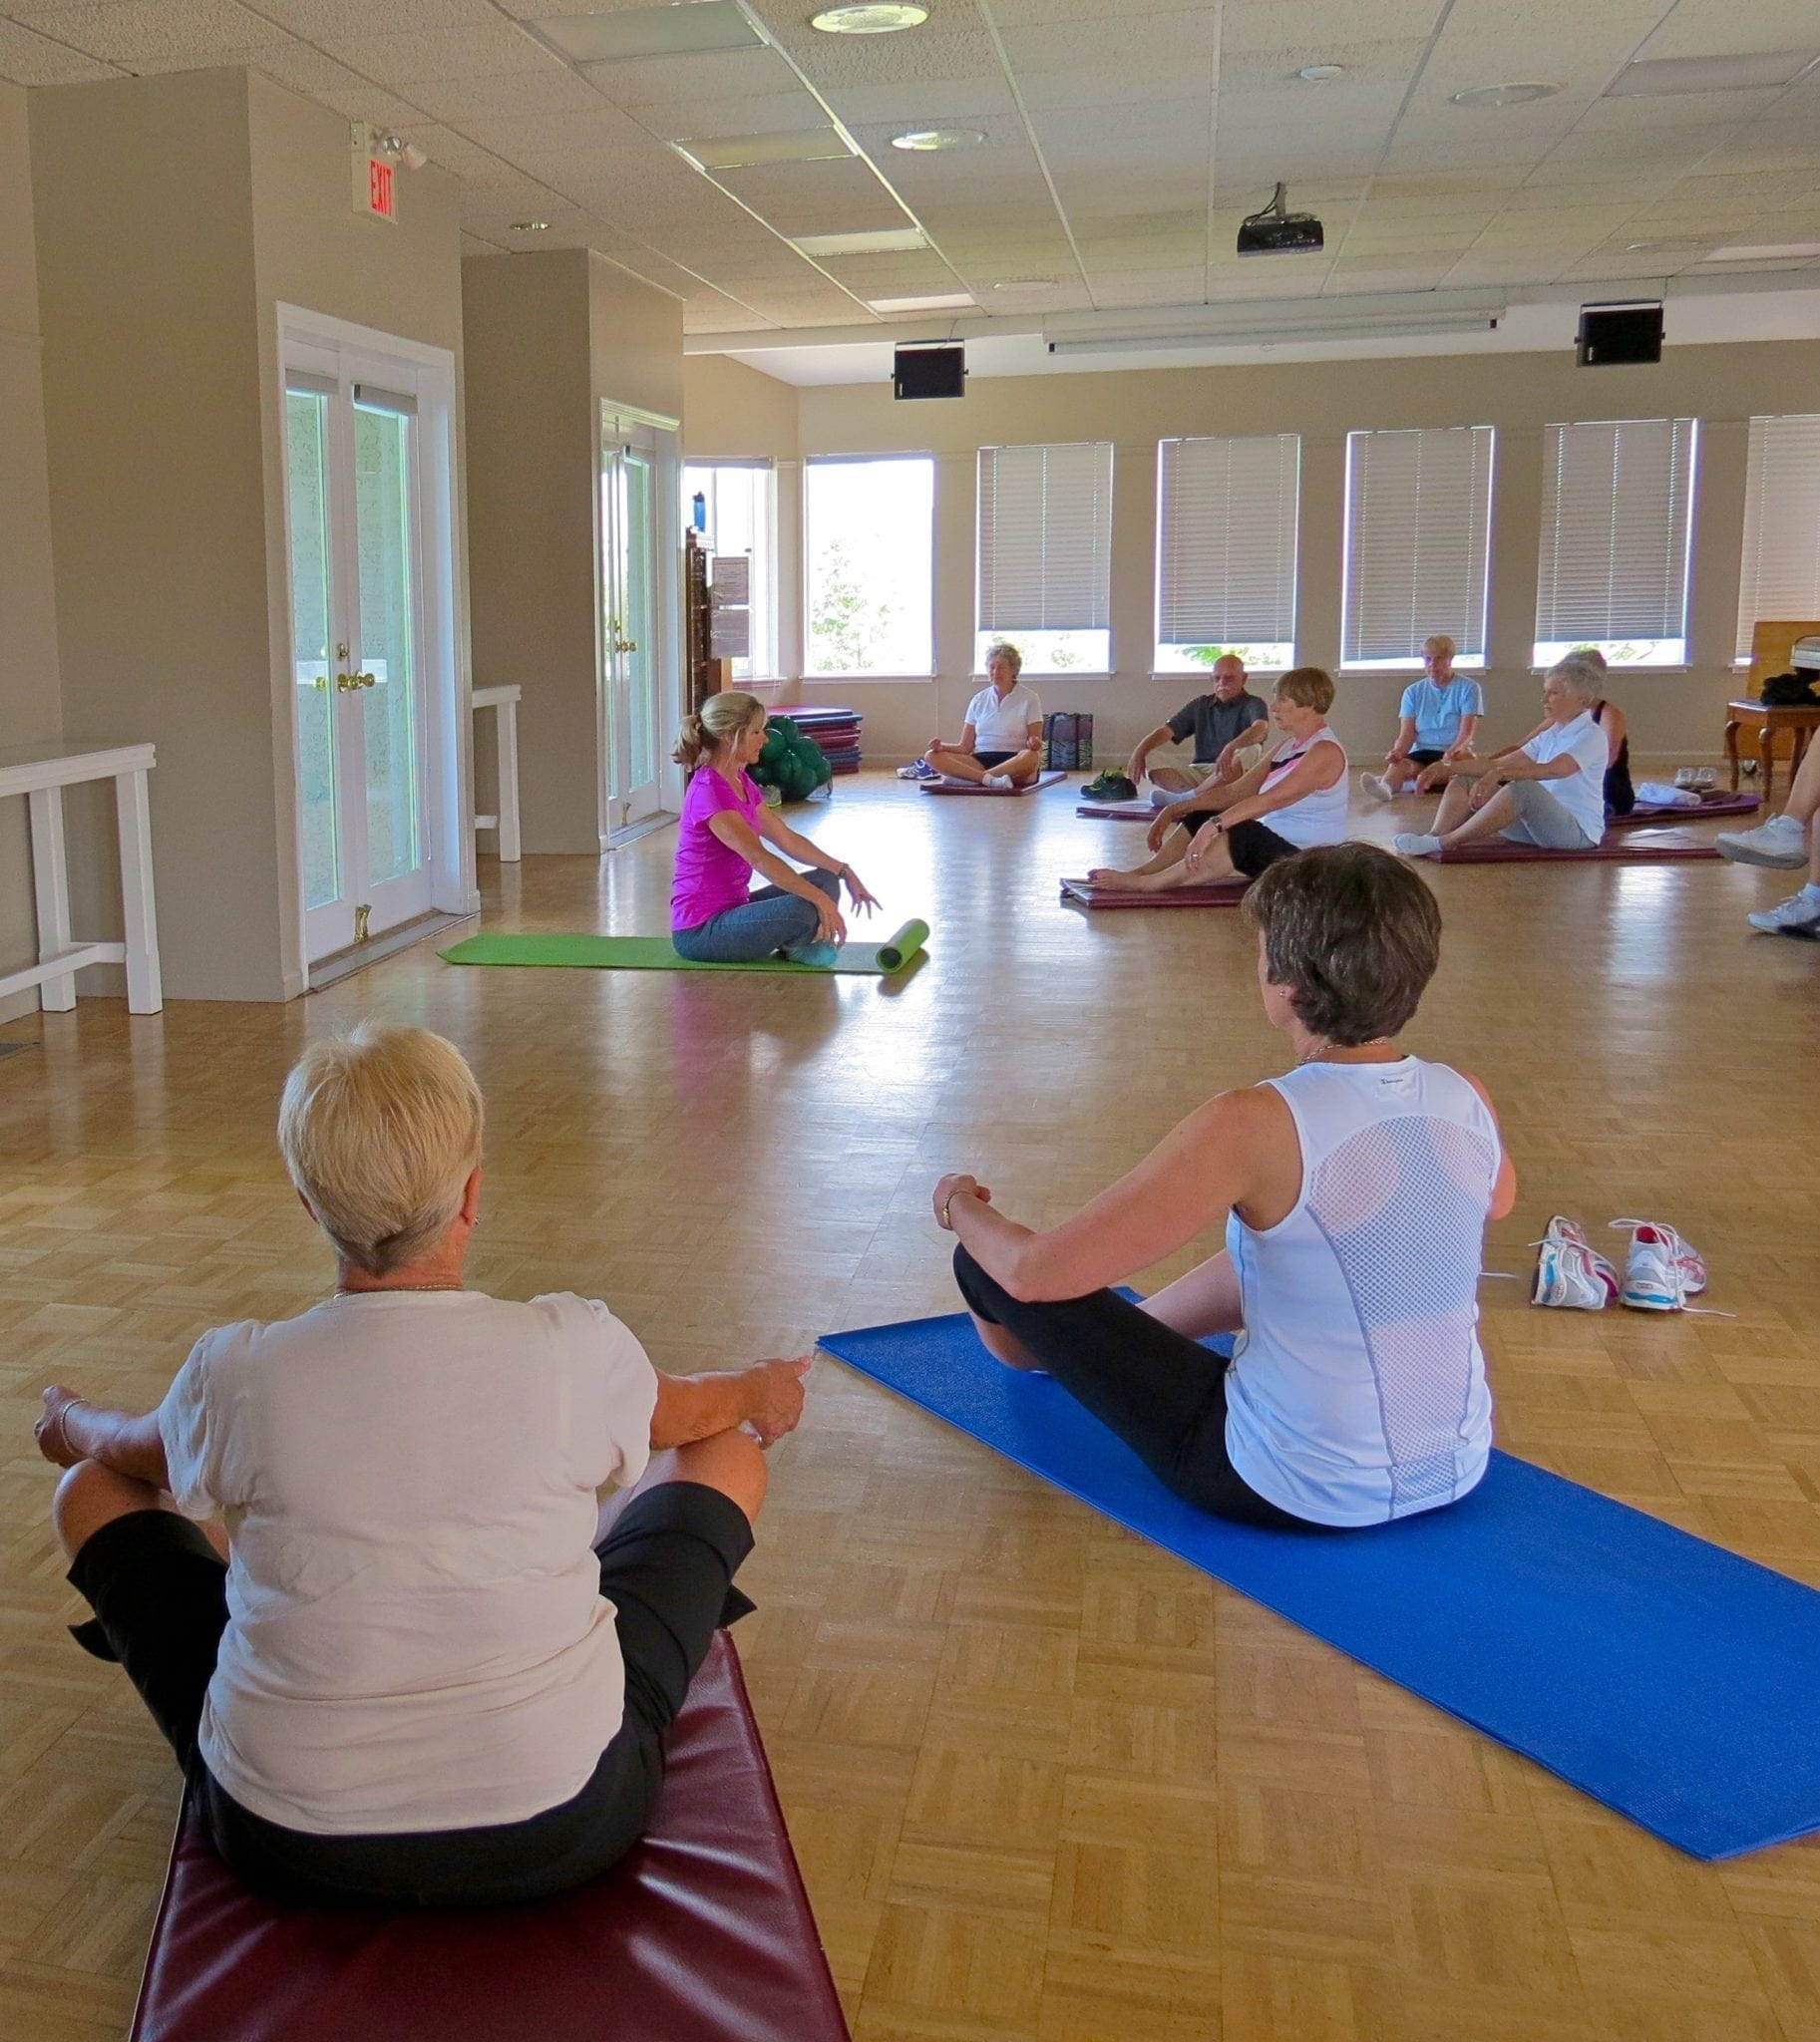 Organized Fitness Classes including Pilates, Aerobics, Yoga